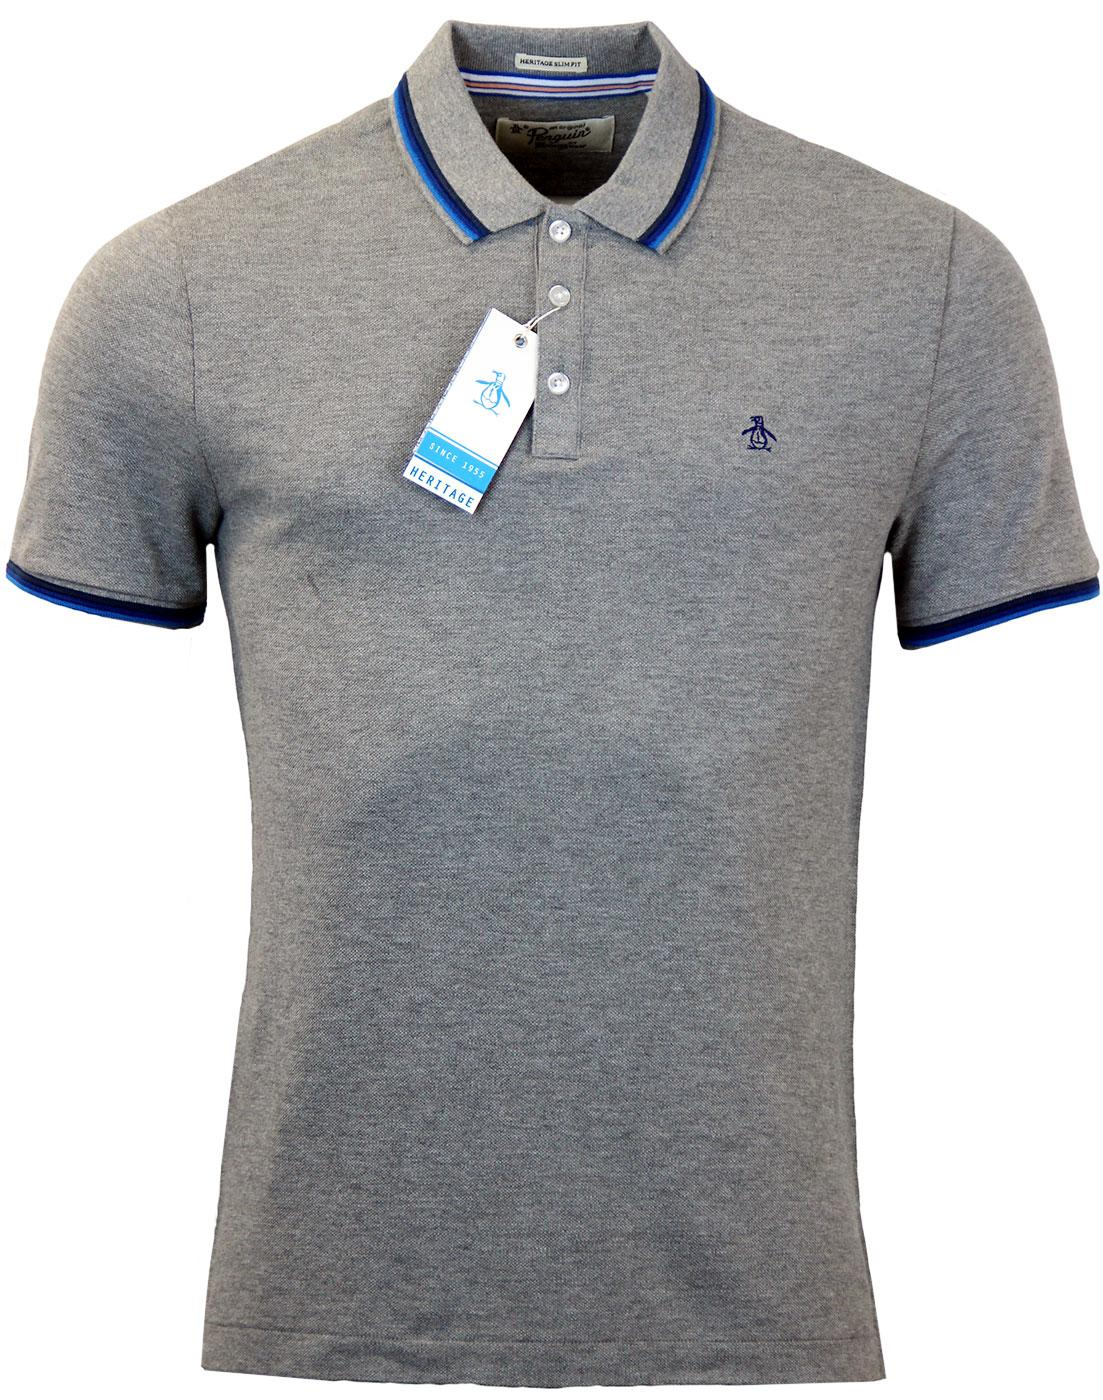 Volley ORIGINAL PENGUIN Retro Mod 60s Tipped Polo